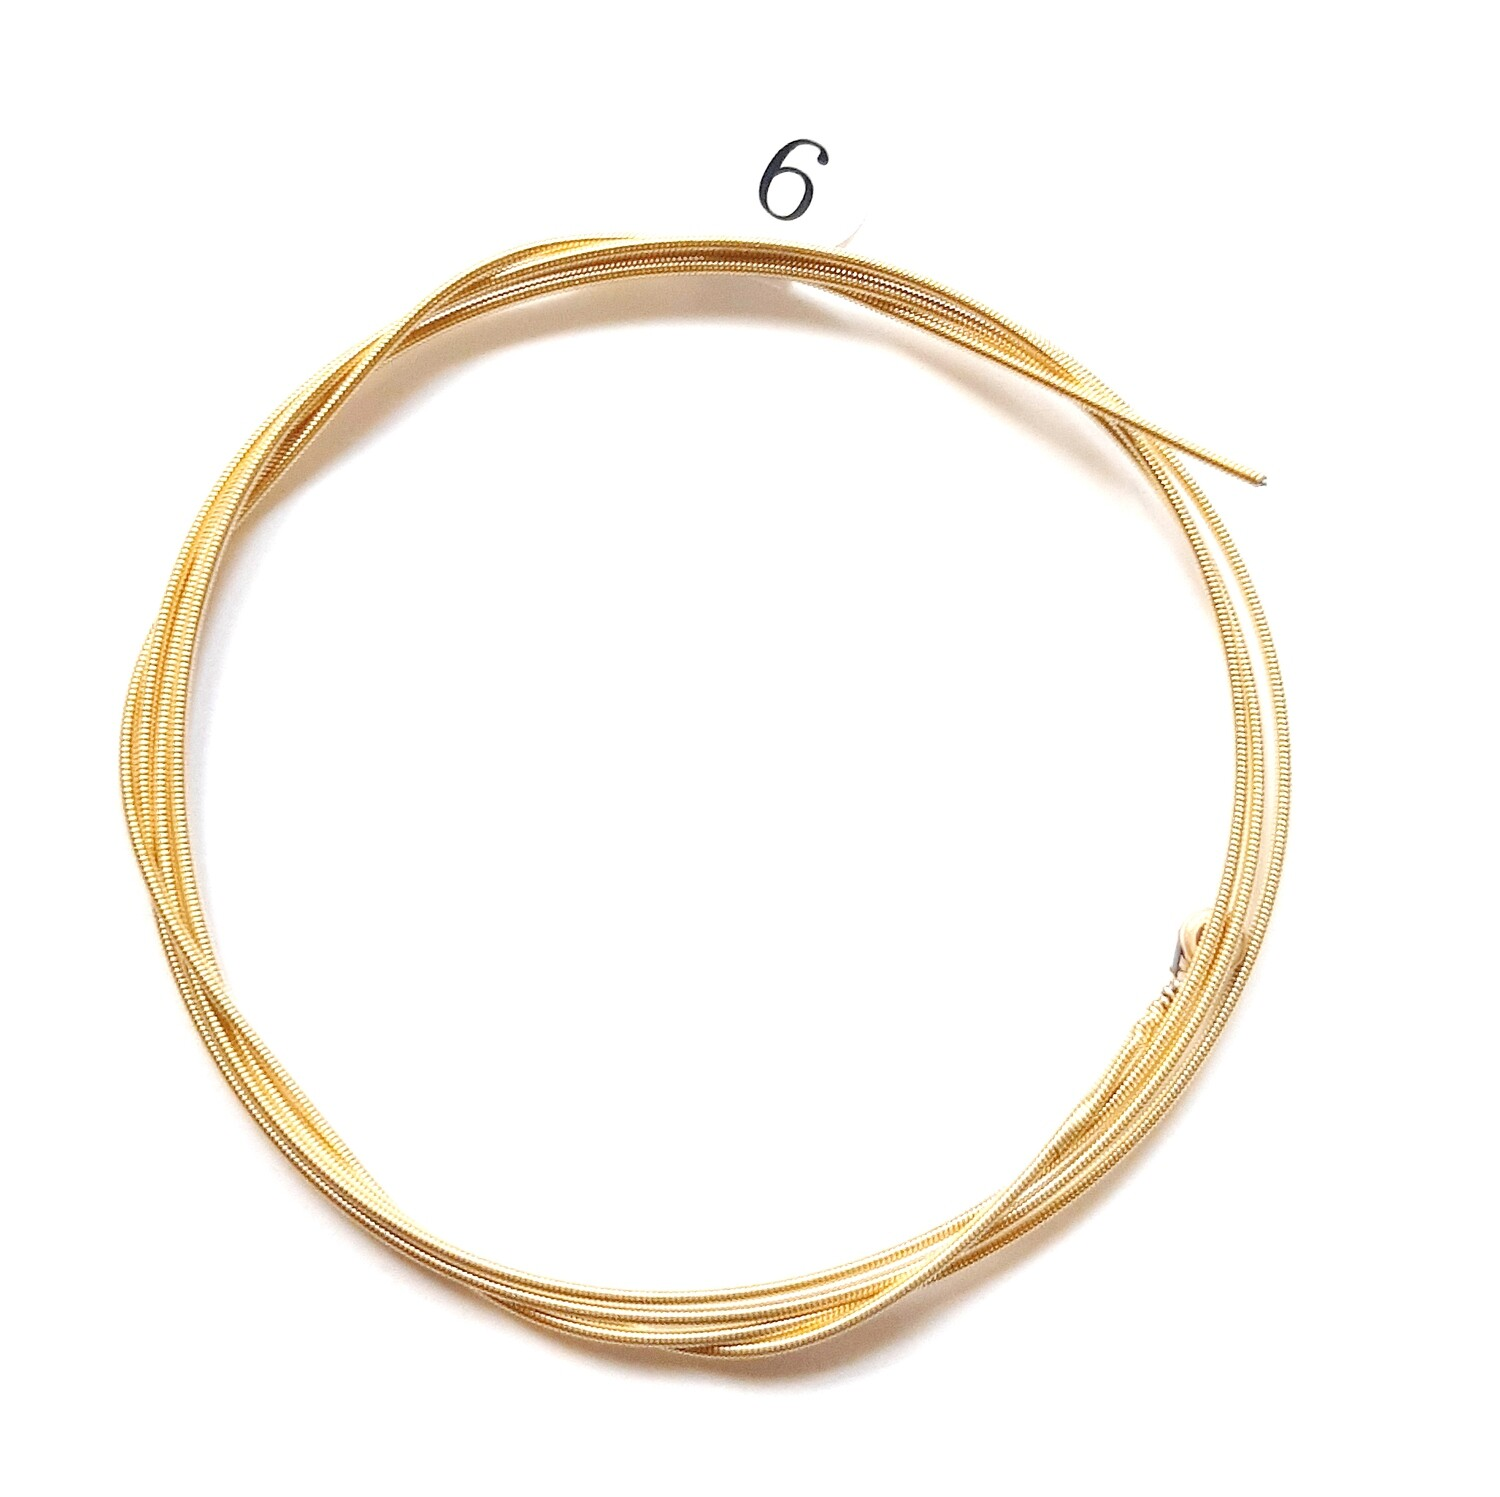 Single Acoustic Guitar String : 6th string : 5 pcs